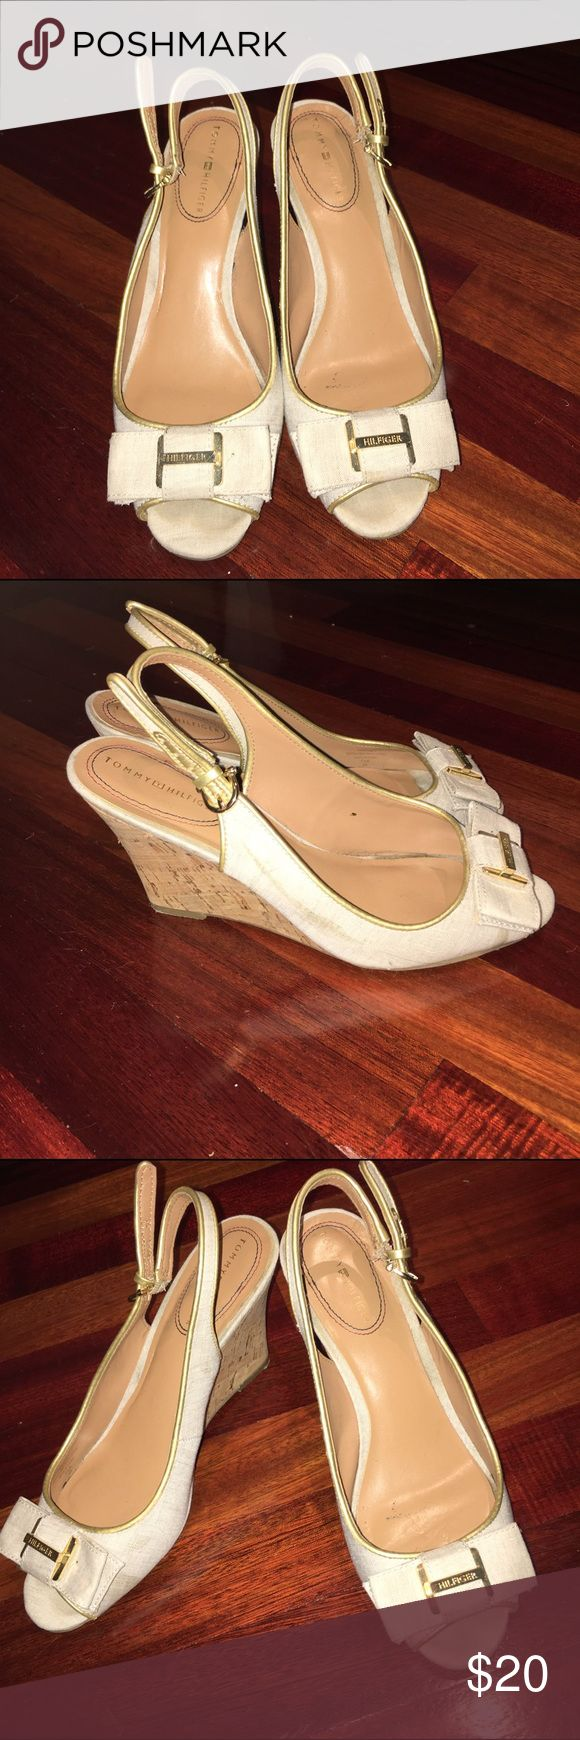 Tommy Hilfiger heels These are lightly worn heels. Good condition. Minor flaws. See photos. Accidentally bought them with the stains . So disappointed. Happy shopping 😁 Tommy Hilfiger Shoes Heels